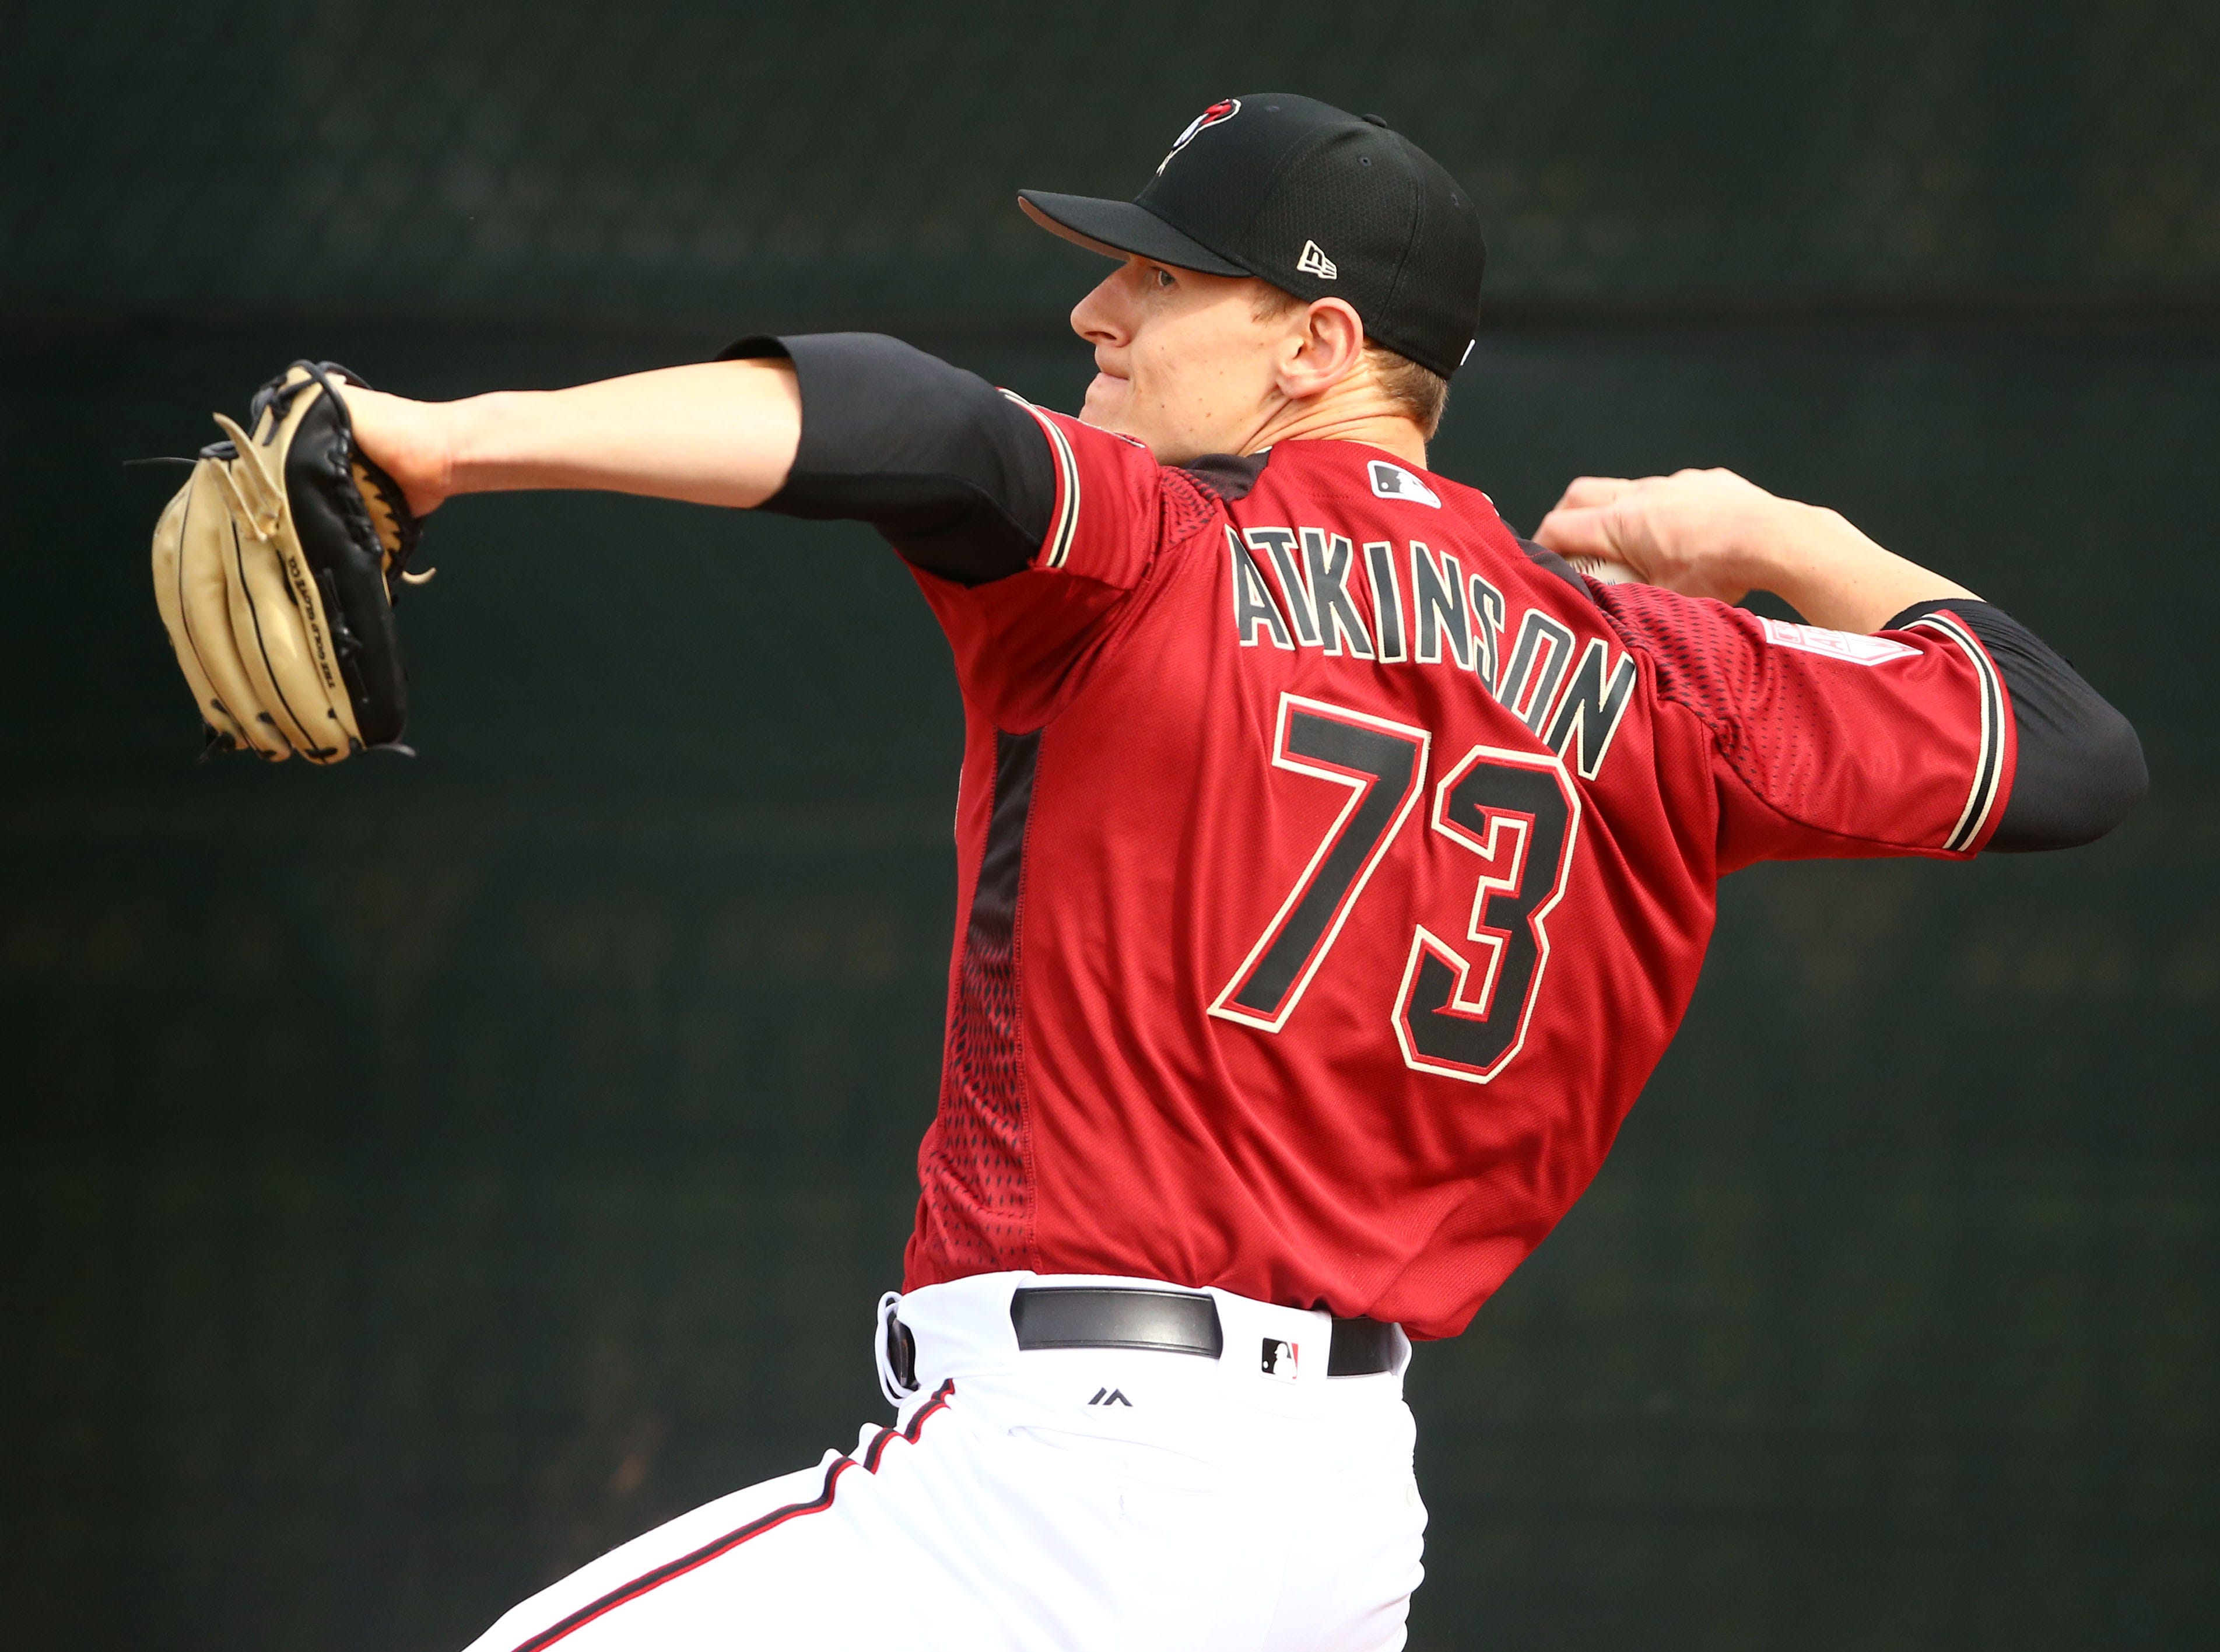 Arizona Diamondbacks pitcher Ryan Atkinson during the first day of spring training workouts on Feb. 13 at Salt River Fields in Scottsdale.